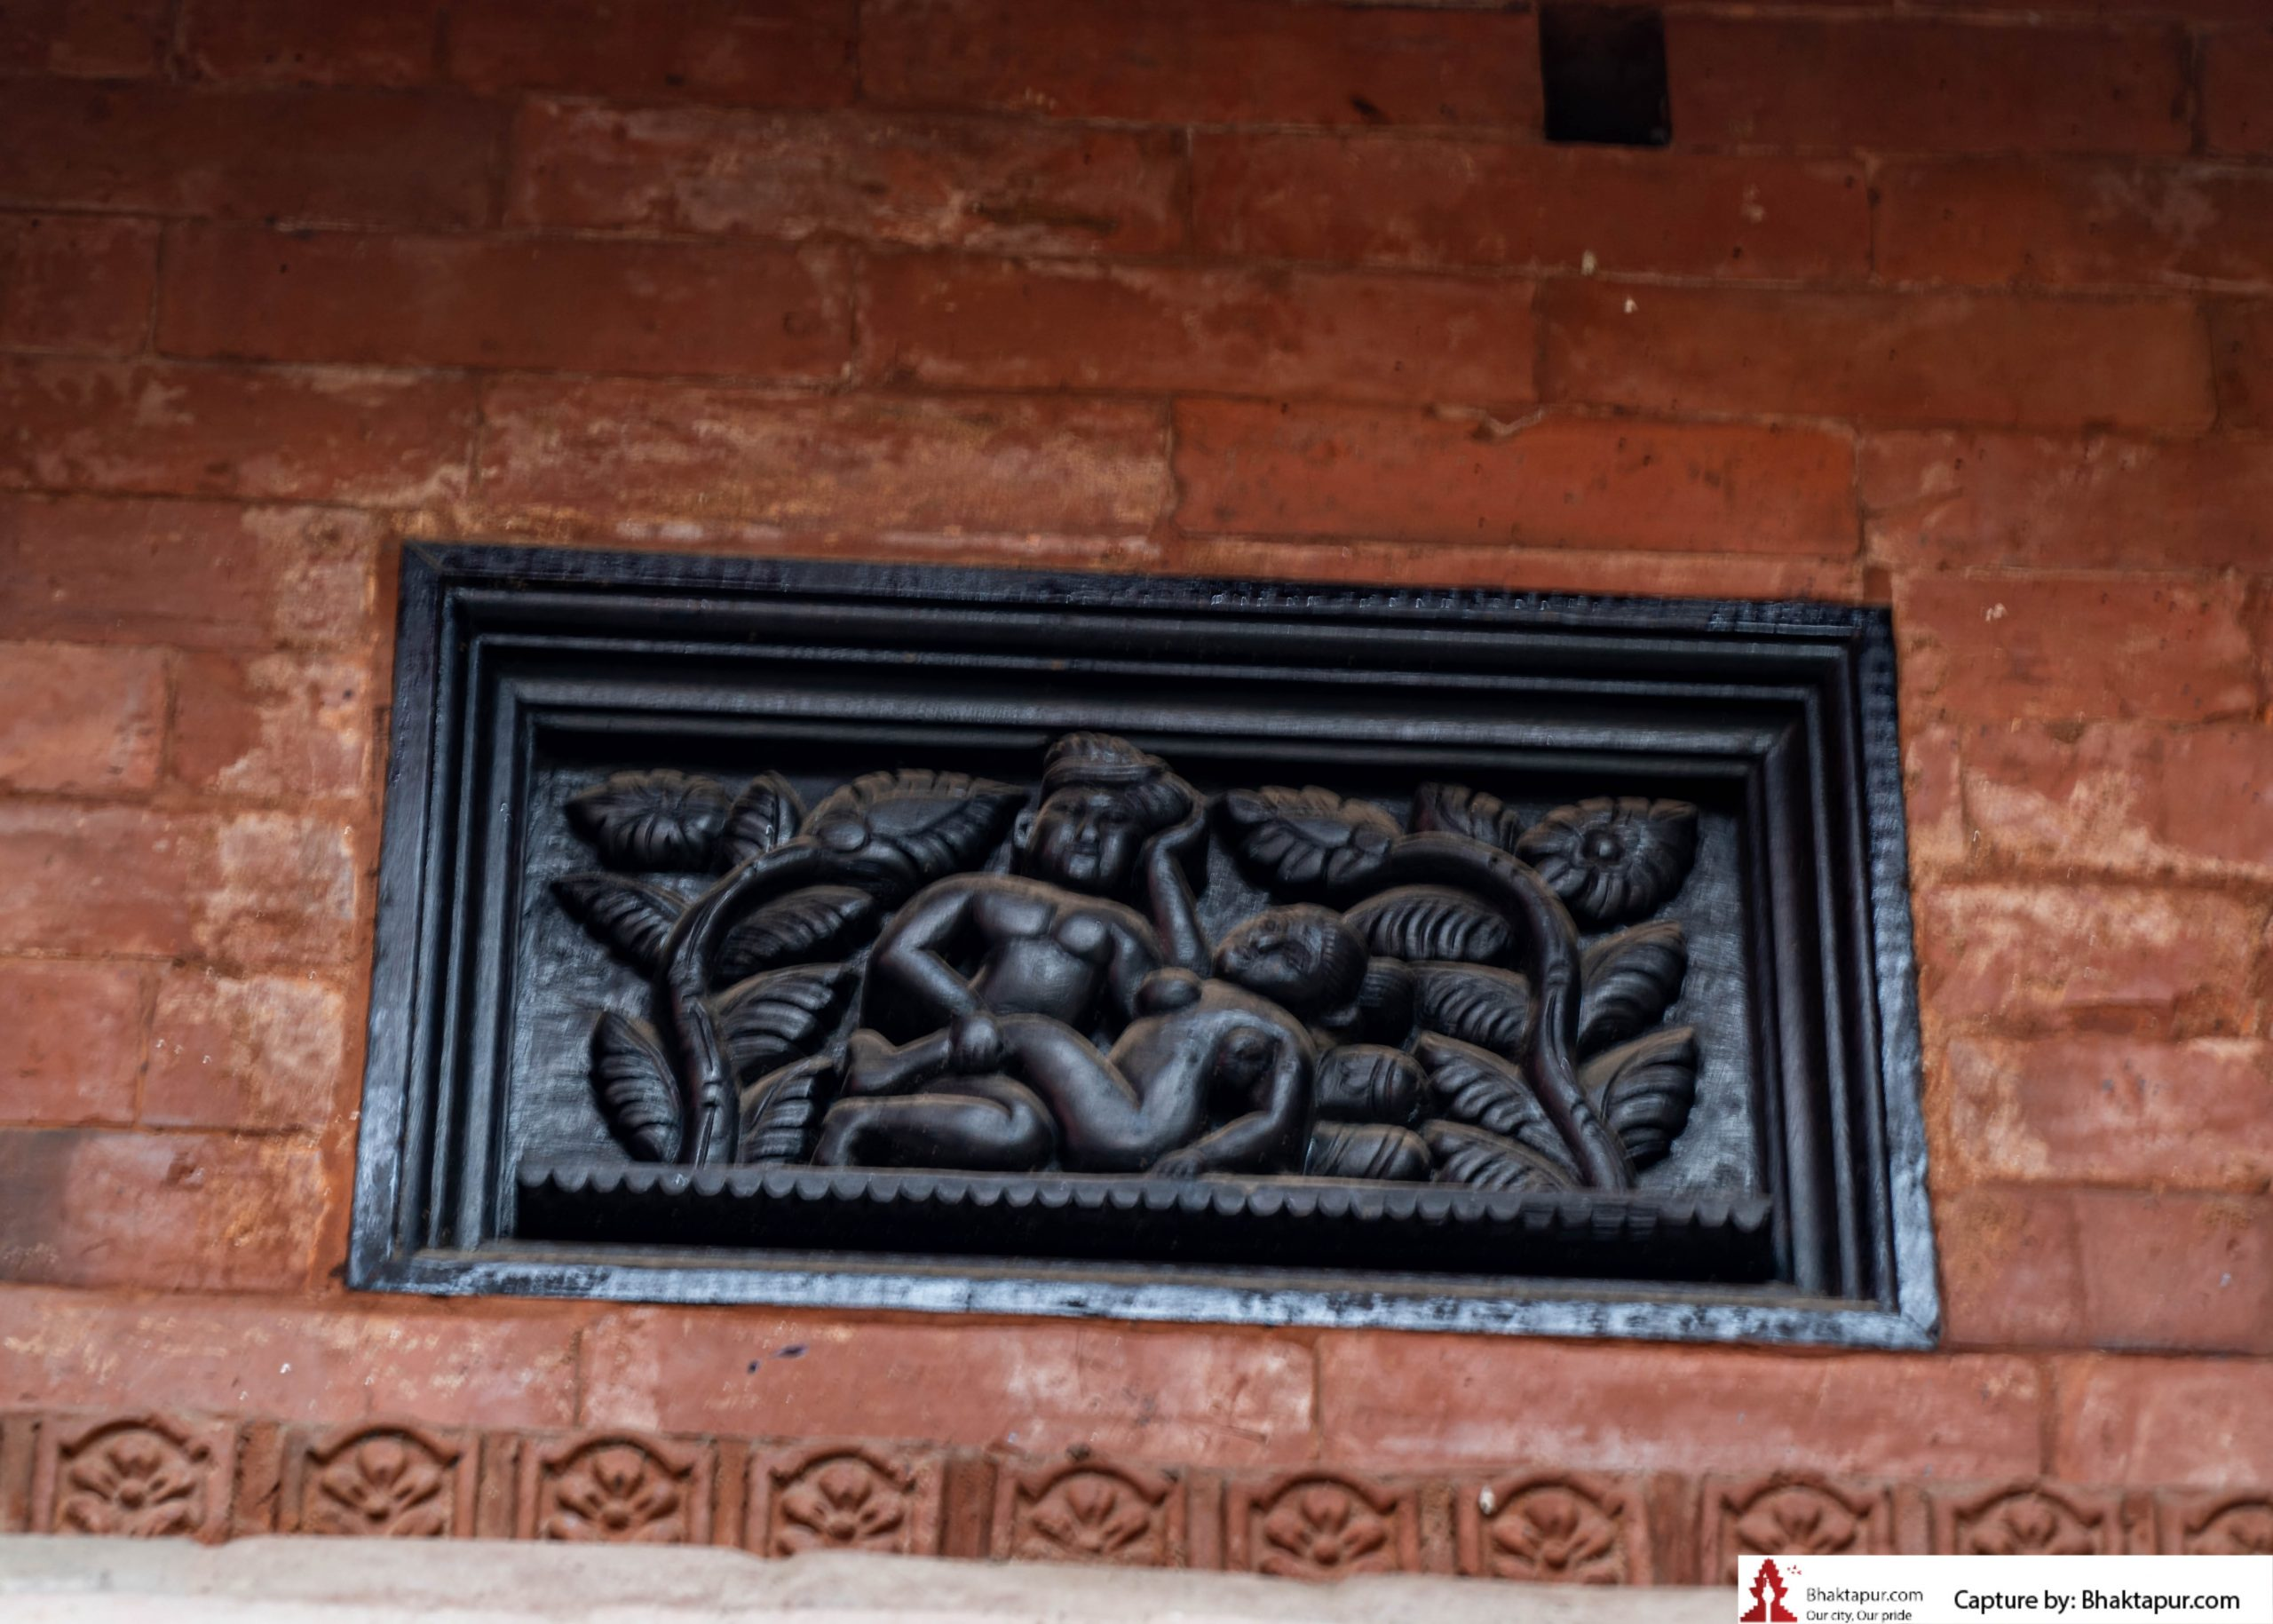 https://www.bhaktapur.com/wp-content/uploads/2021/08/erotic-carving-136-of-137-scaled.jpg